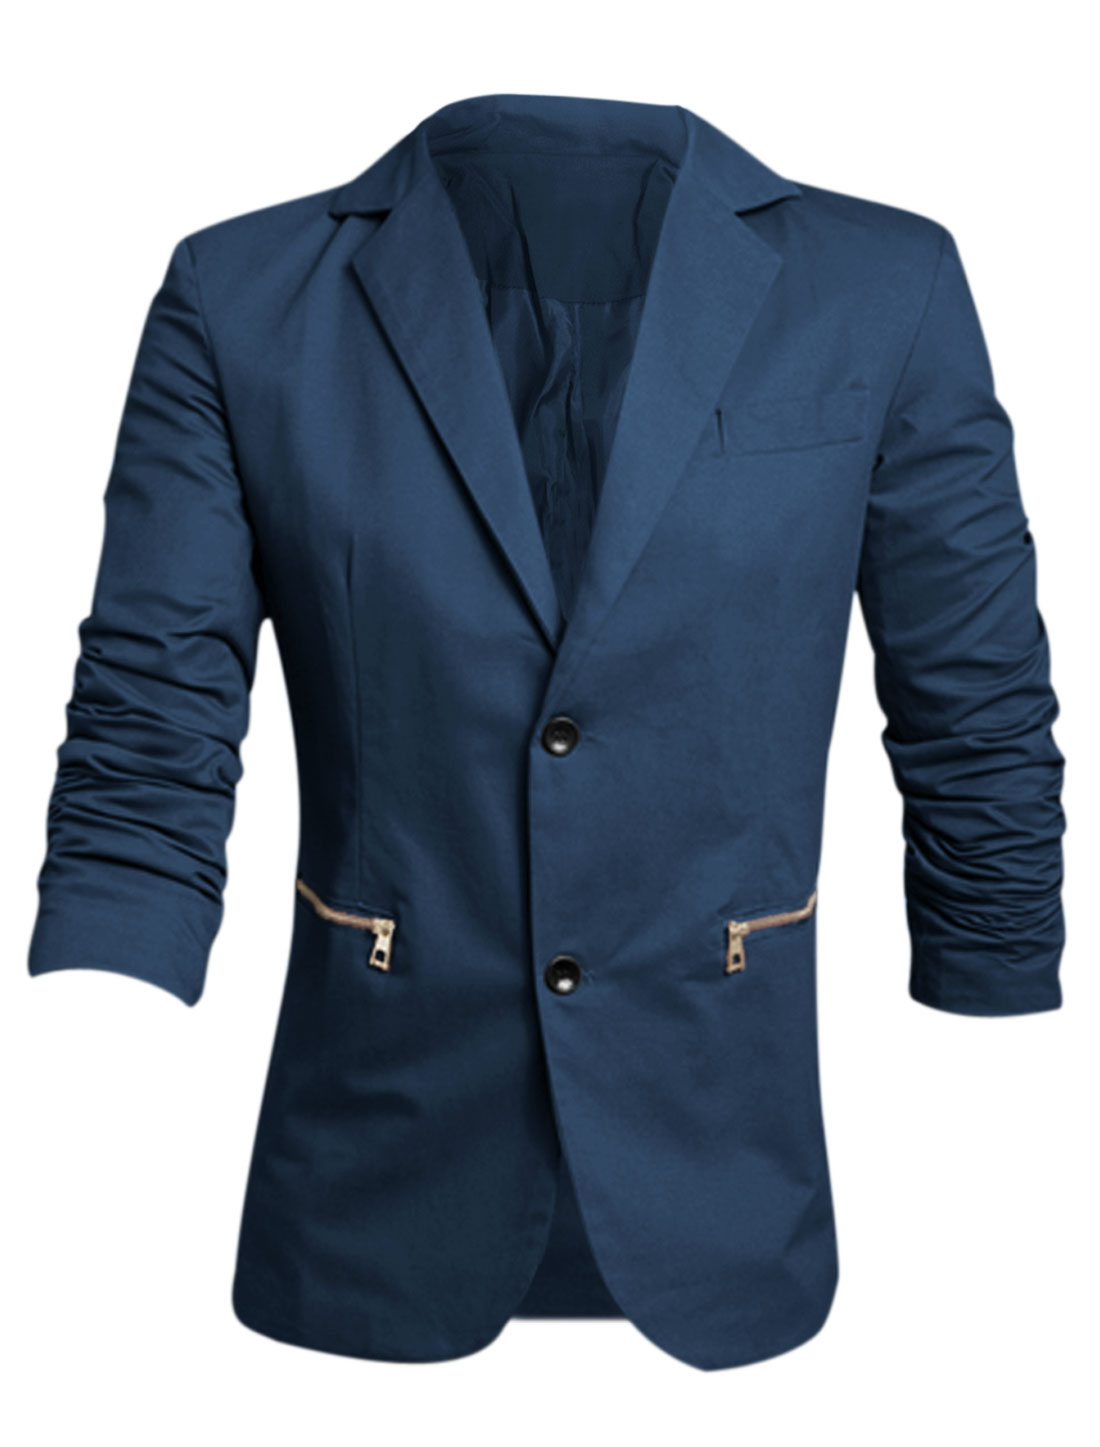 Men Notched Lapel Button Down Button Decor Cuffs Casual Blazer Navy Blue M